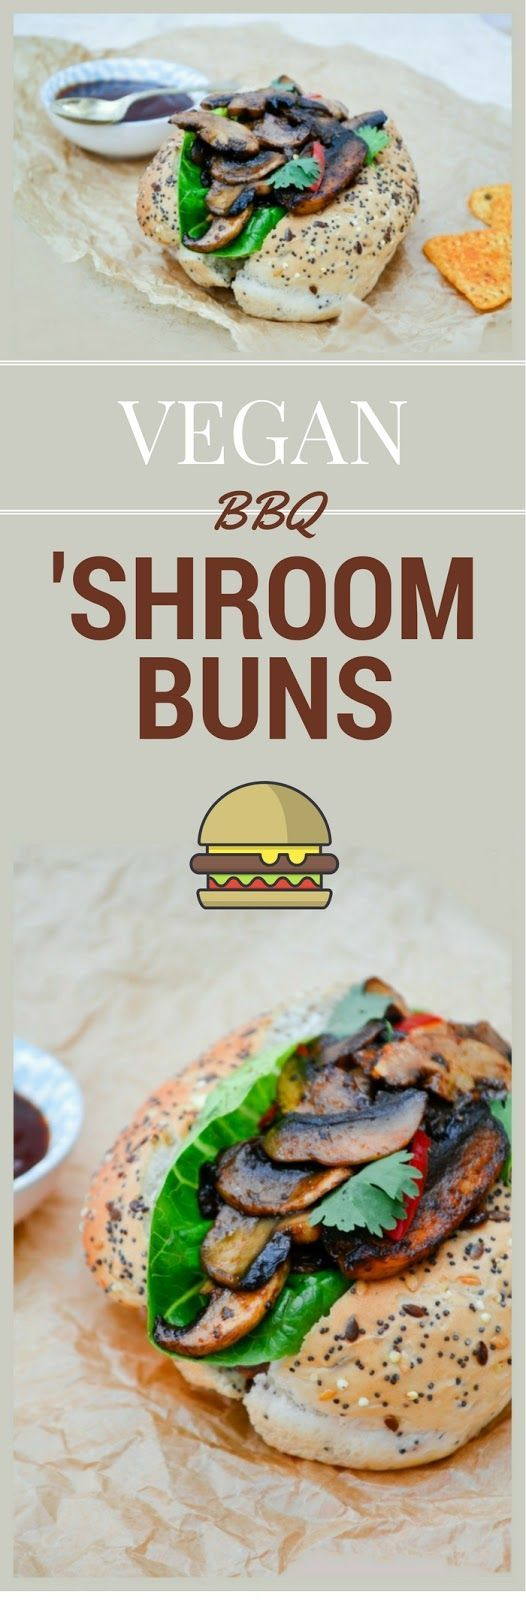 Vegan BBQ 'Shroom Buns - Smoky BBQ mushrooms in deli buns with lettuce leaves, red onion and chilli. A great vegan lunch or team them with sweet potato fries and a dressed green salad for dinner. Dairy-free and vegan